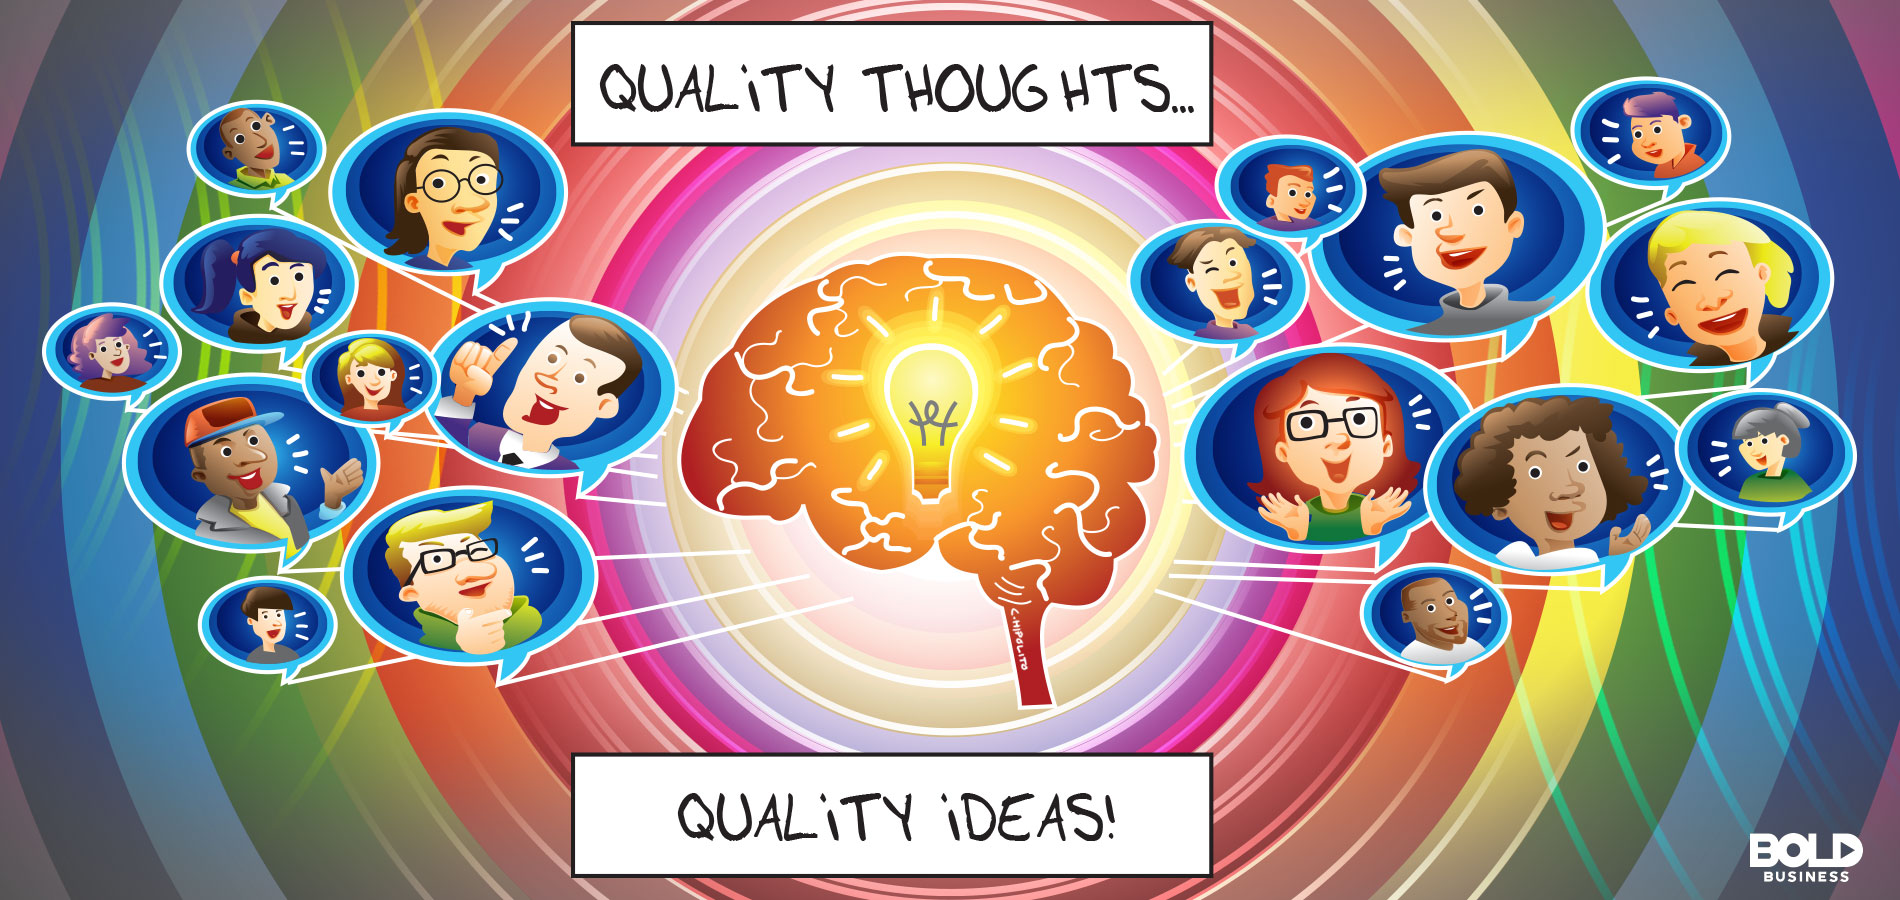 cartoon on quality thoughts and ideas